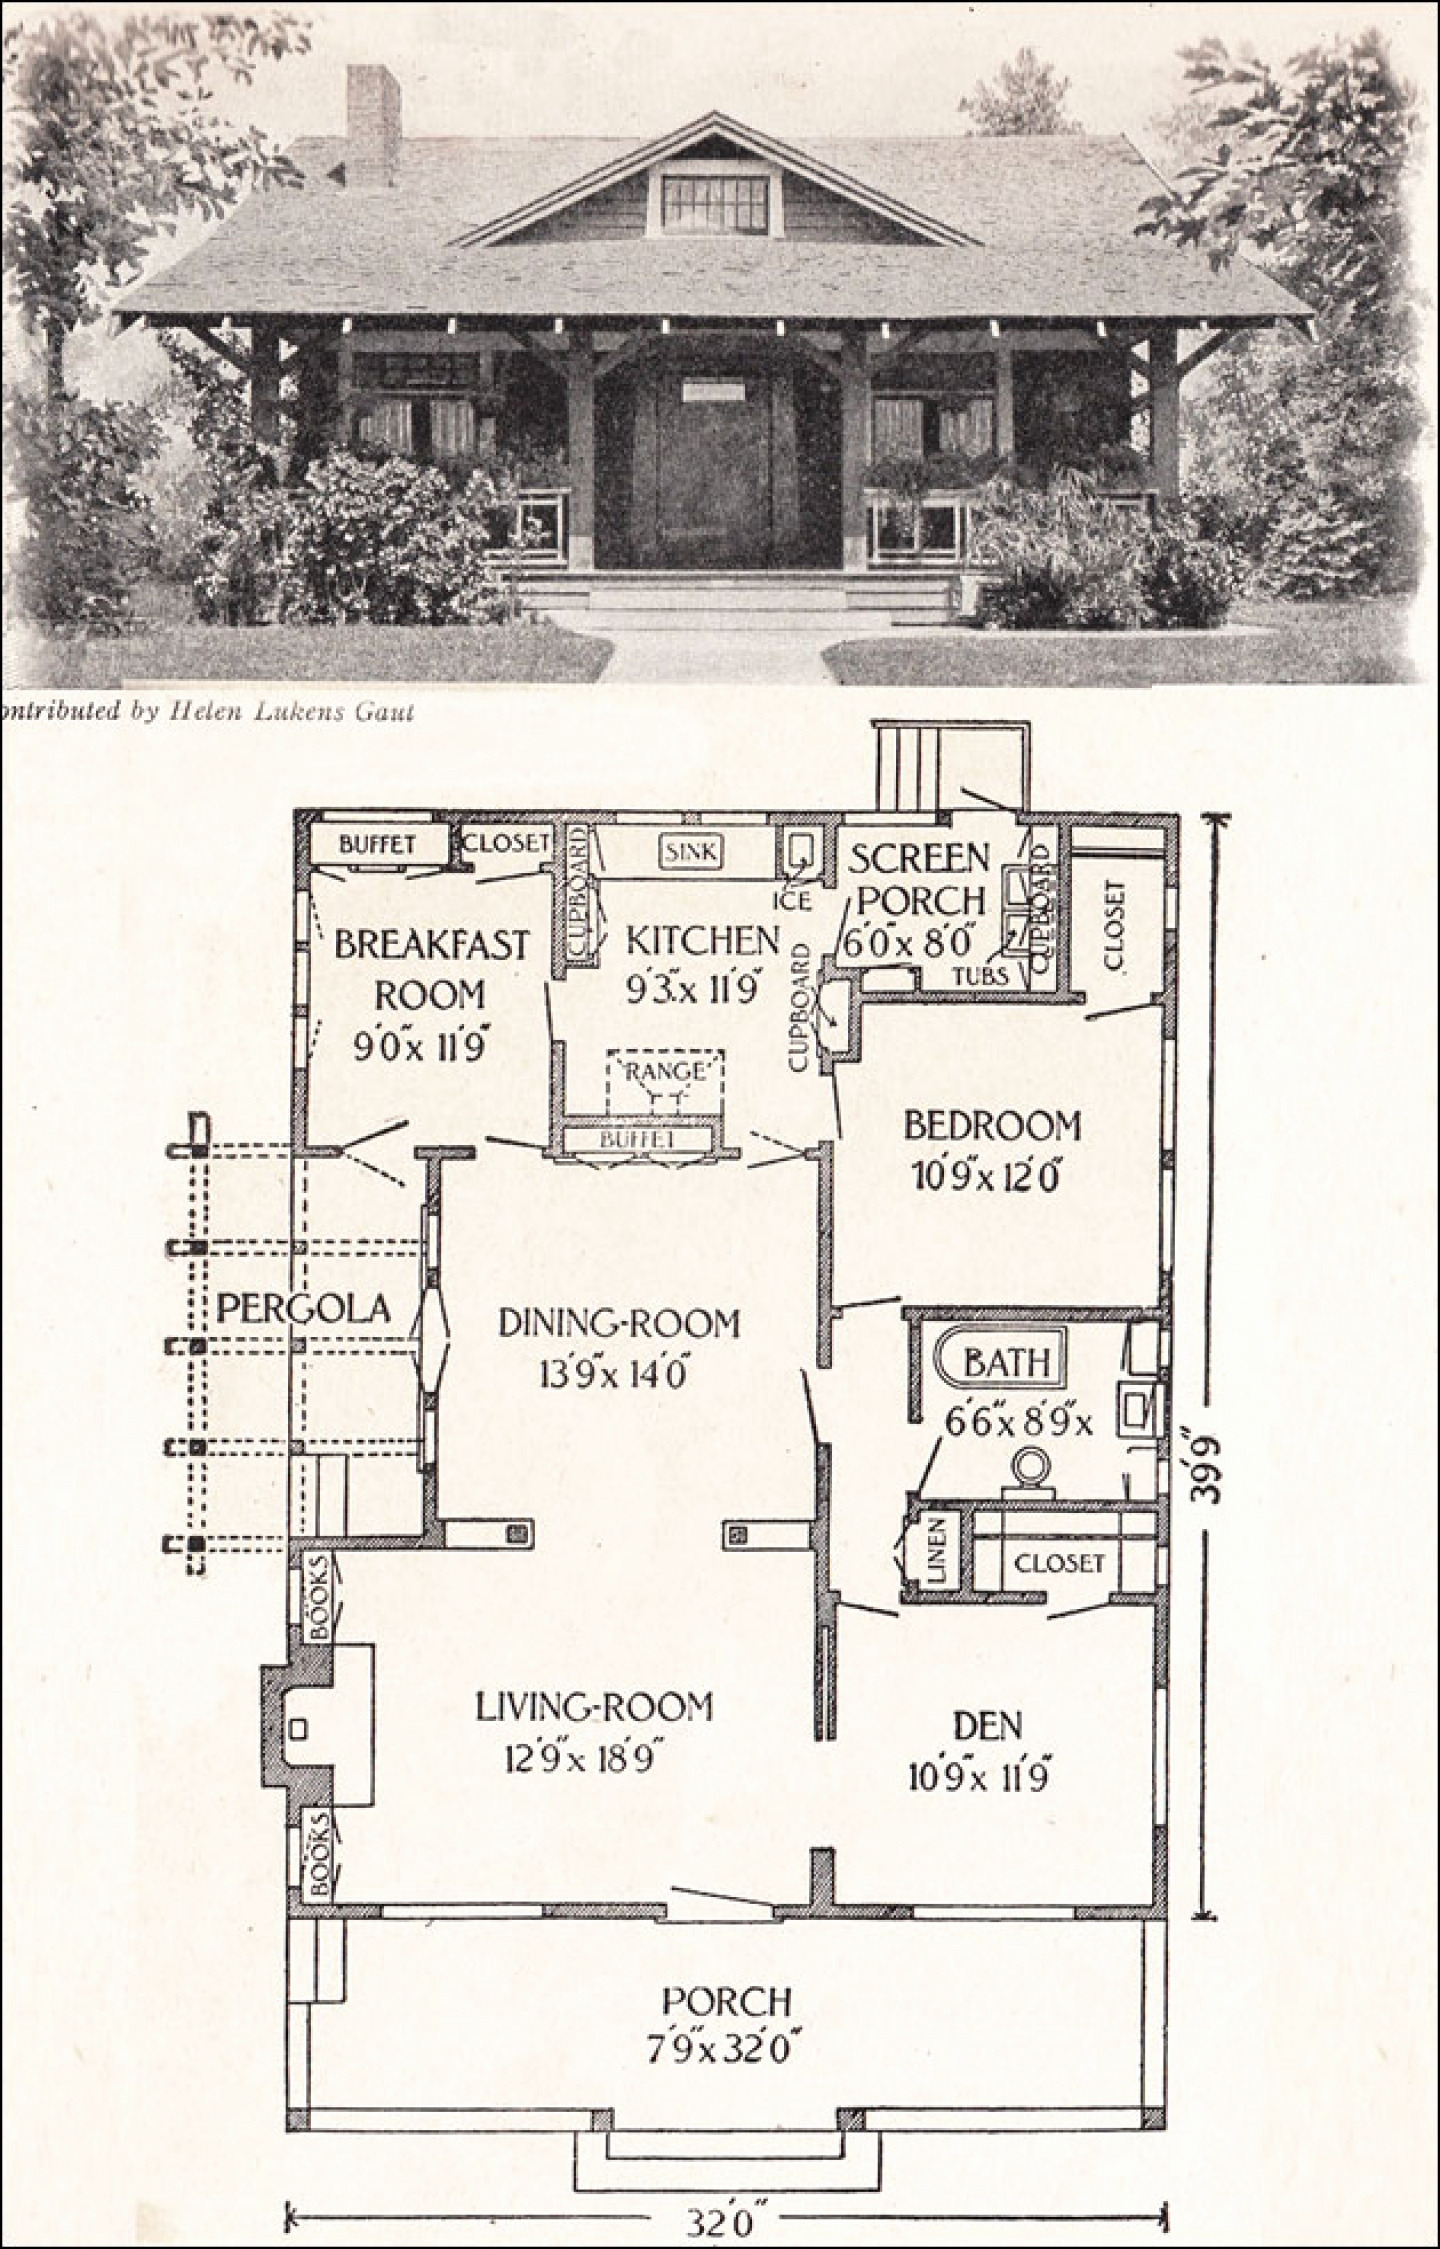 Pier and Beam House Plans New Home Construction Drawing at Getdrawings